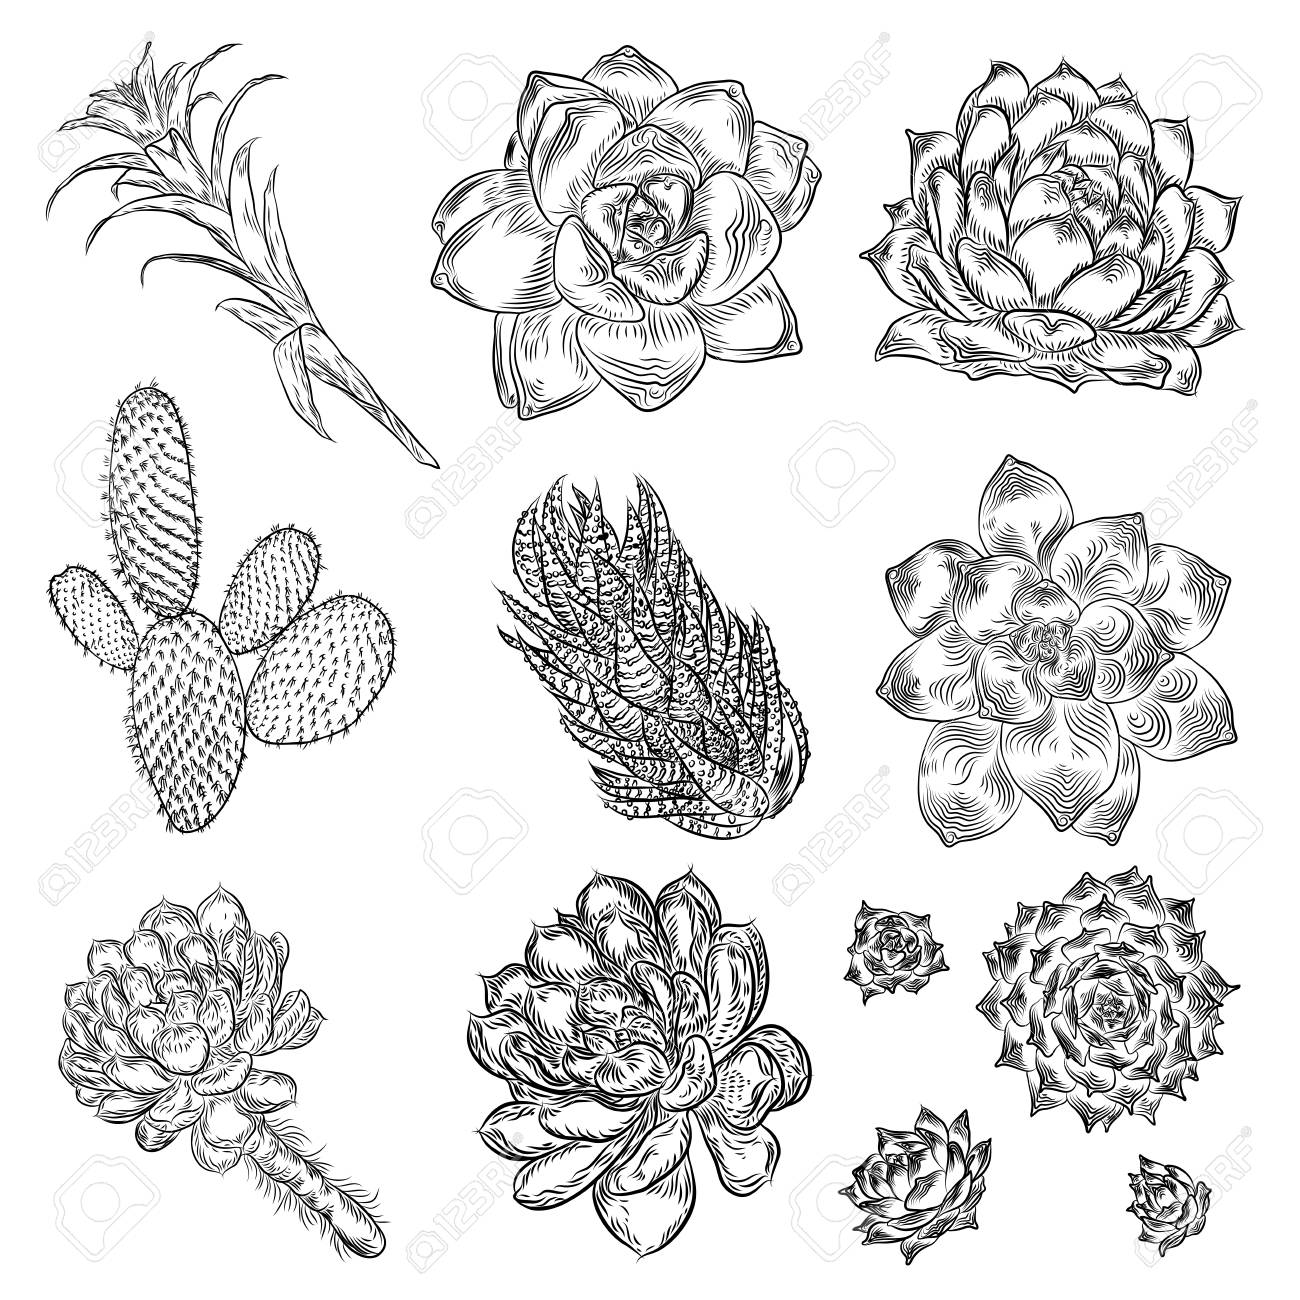 Cute Cactus Illustrations Handmade Set Hand Drawn Outline Cacti Stock Photo Picture And Royalty Free Image Image 108023455